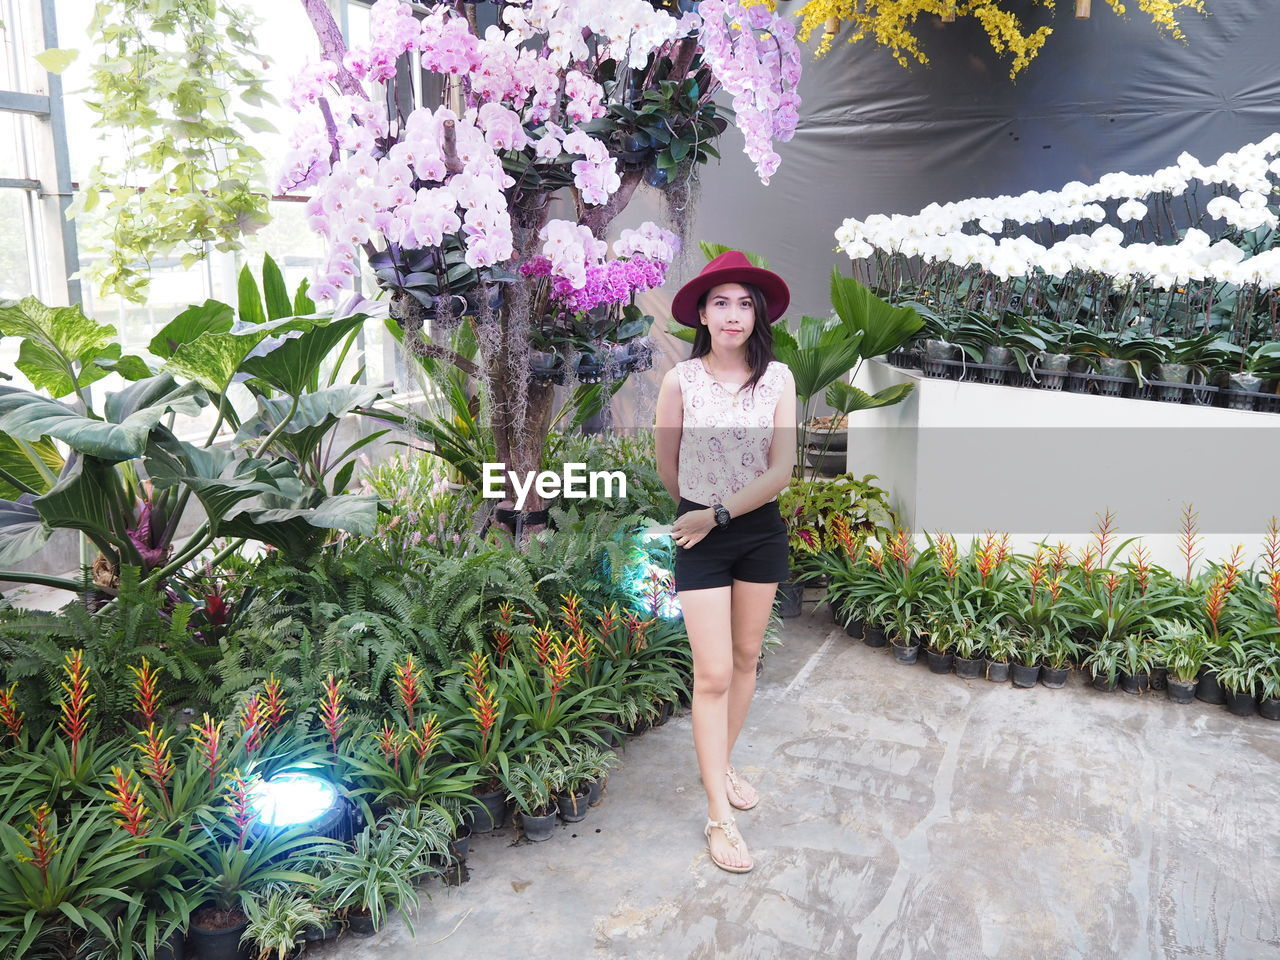 plant, looking at camera, one person, portrait, real people, leisure activity, young adult, standing, lifestyles, front view, full length, flowering plant, casual clothing, young women, nature, growth, smiling, day, outdoors, beautiful woman